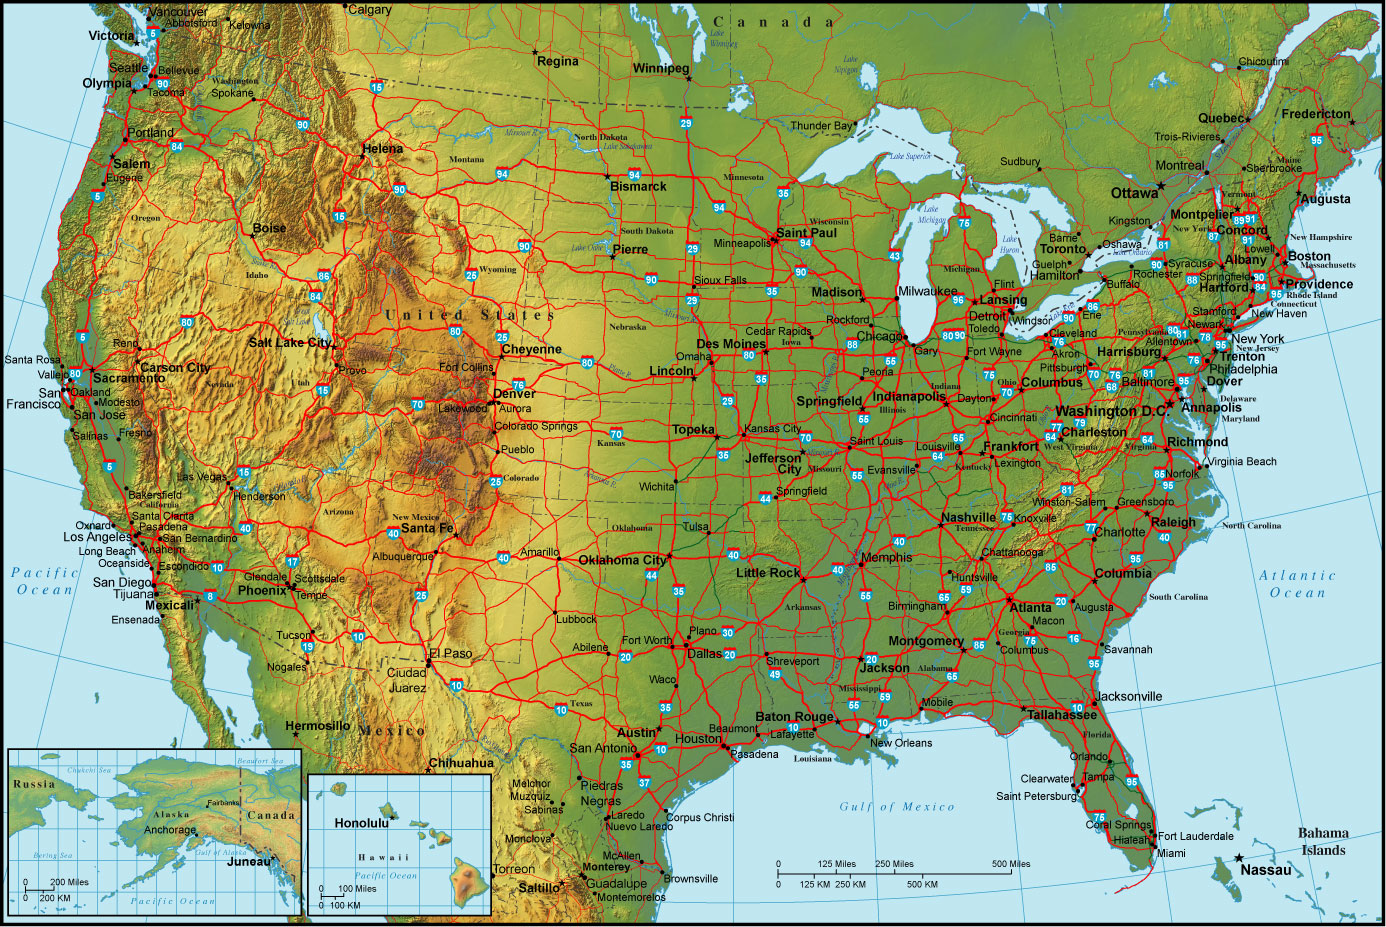 Map Of United States And Vicinity Tabloid Size - Us map pics